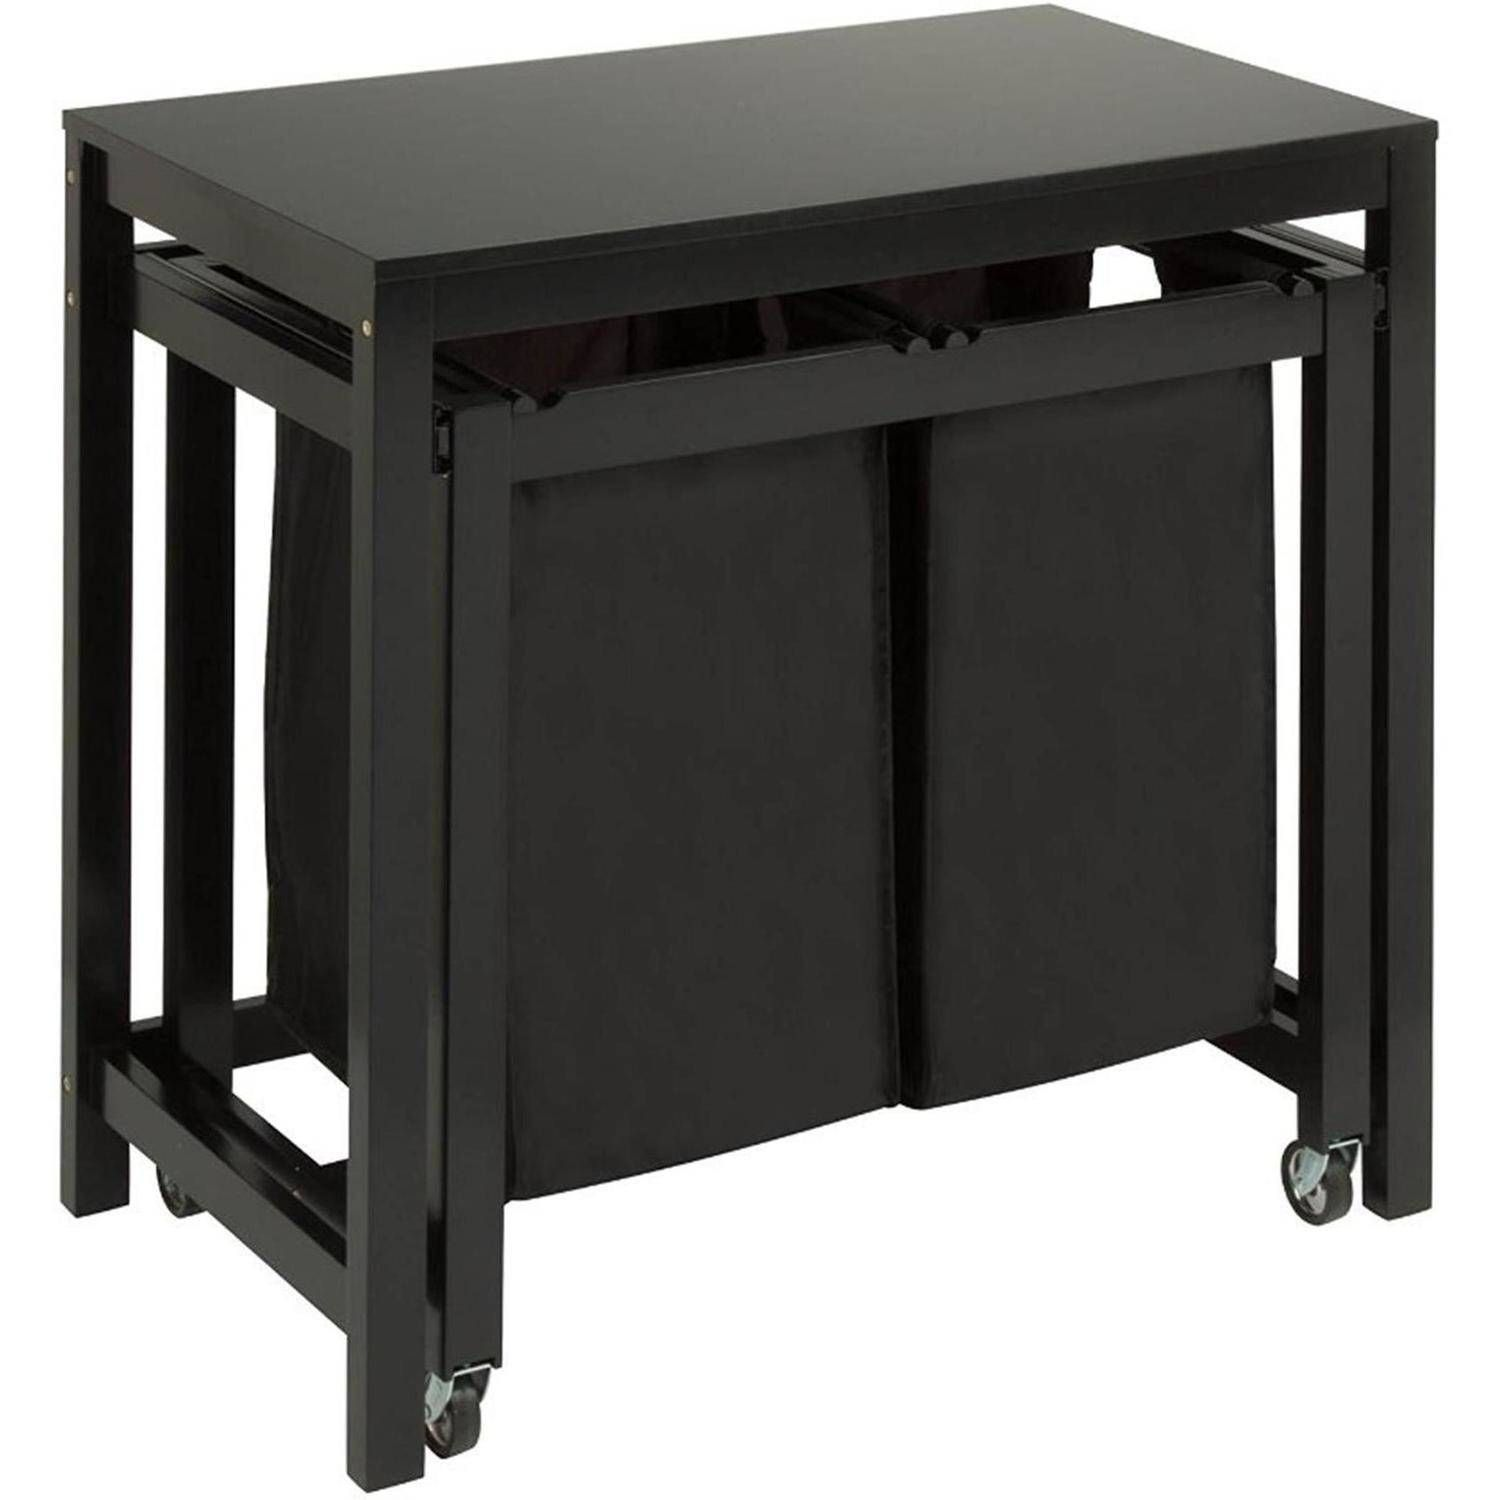 Sports Outdoors In 2020 Laundry Folding Tables Laundry Hamper